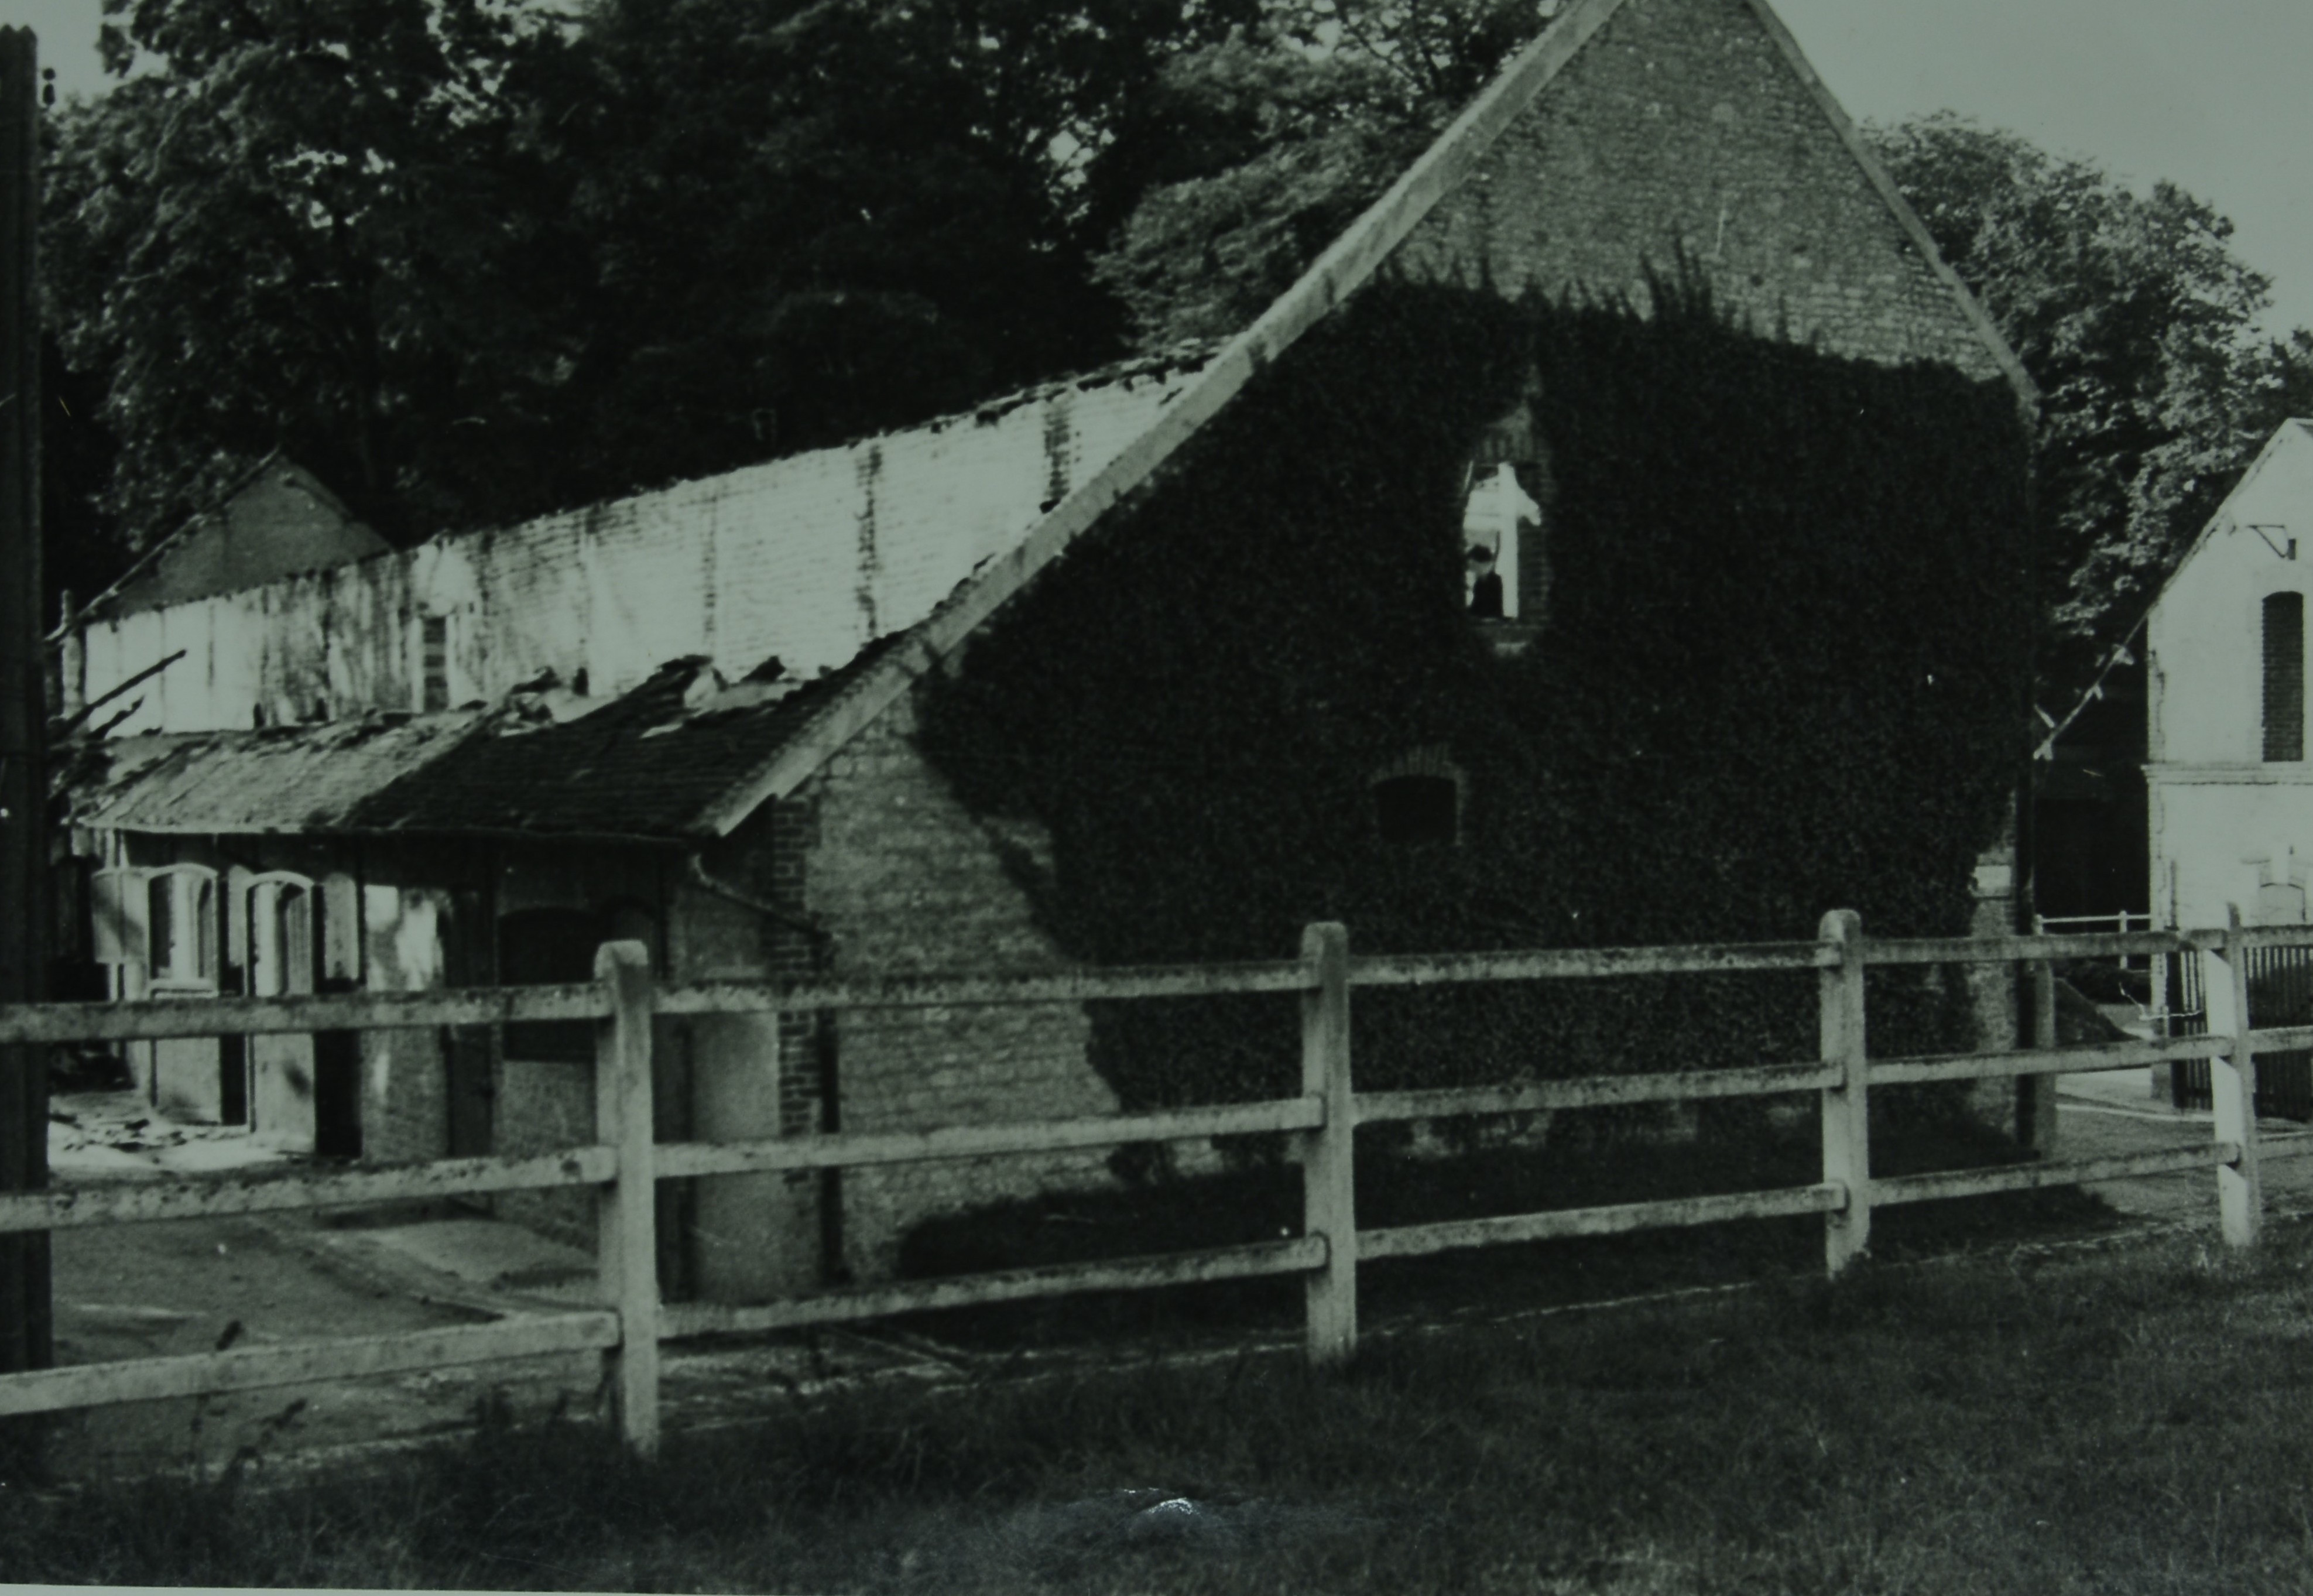 Part of Haras du Gazon after being hit by Allied bombs during the Falaise Gap battle. Photo courtesy of the Marie-Noelle Allart archives section for history and culture for the Orne region